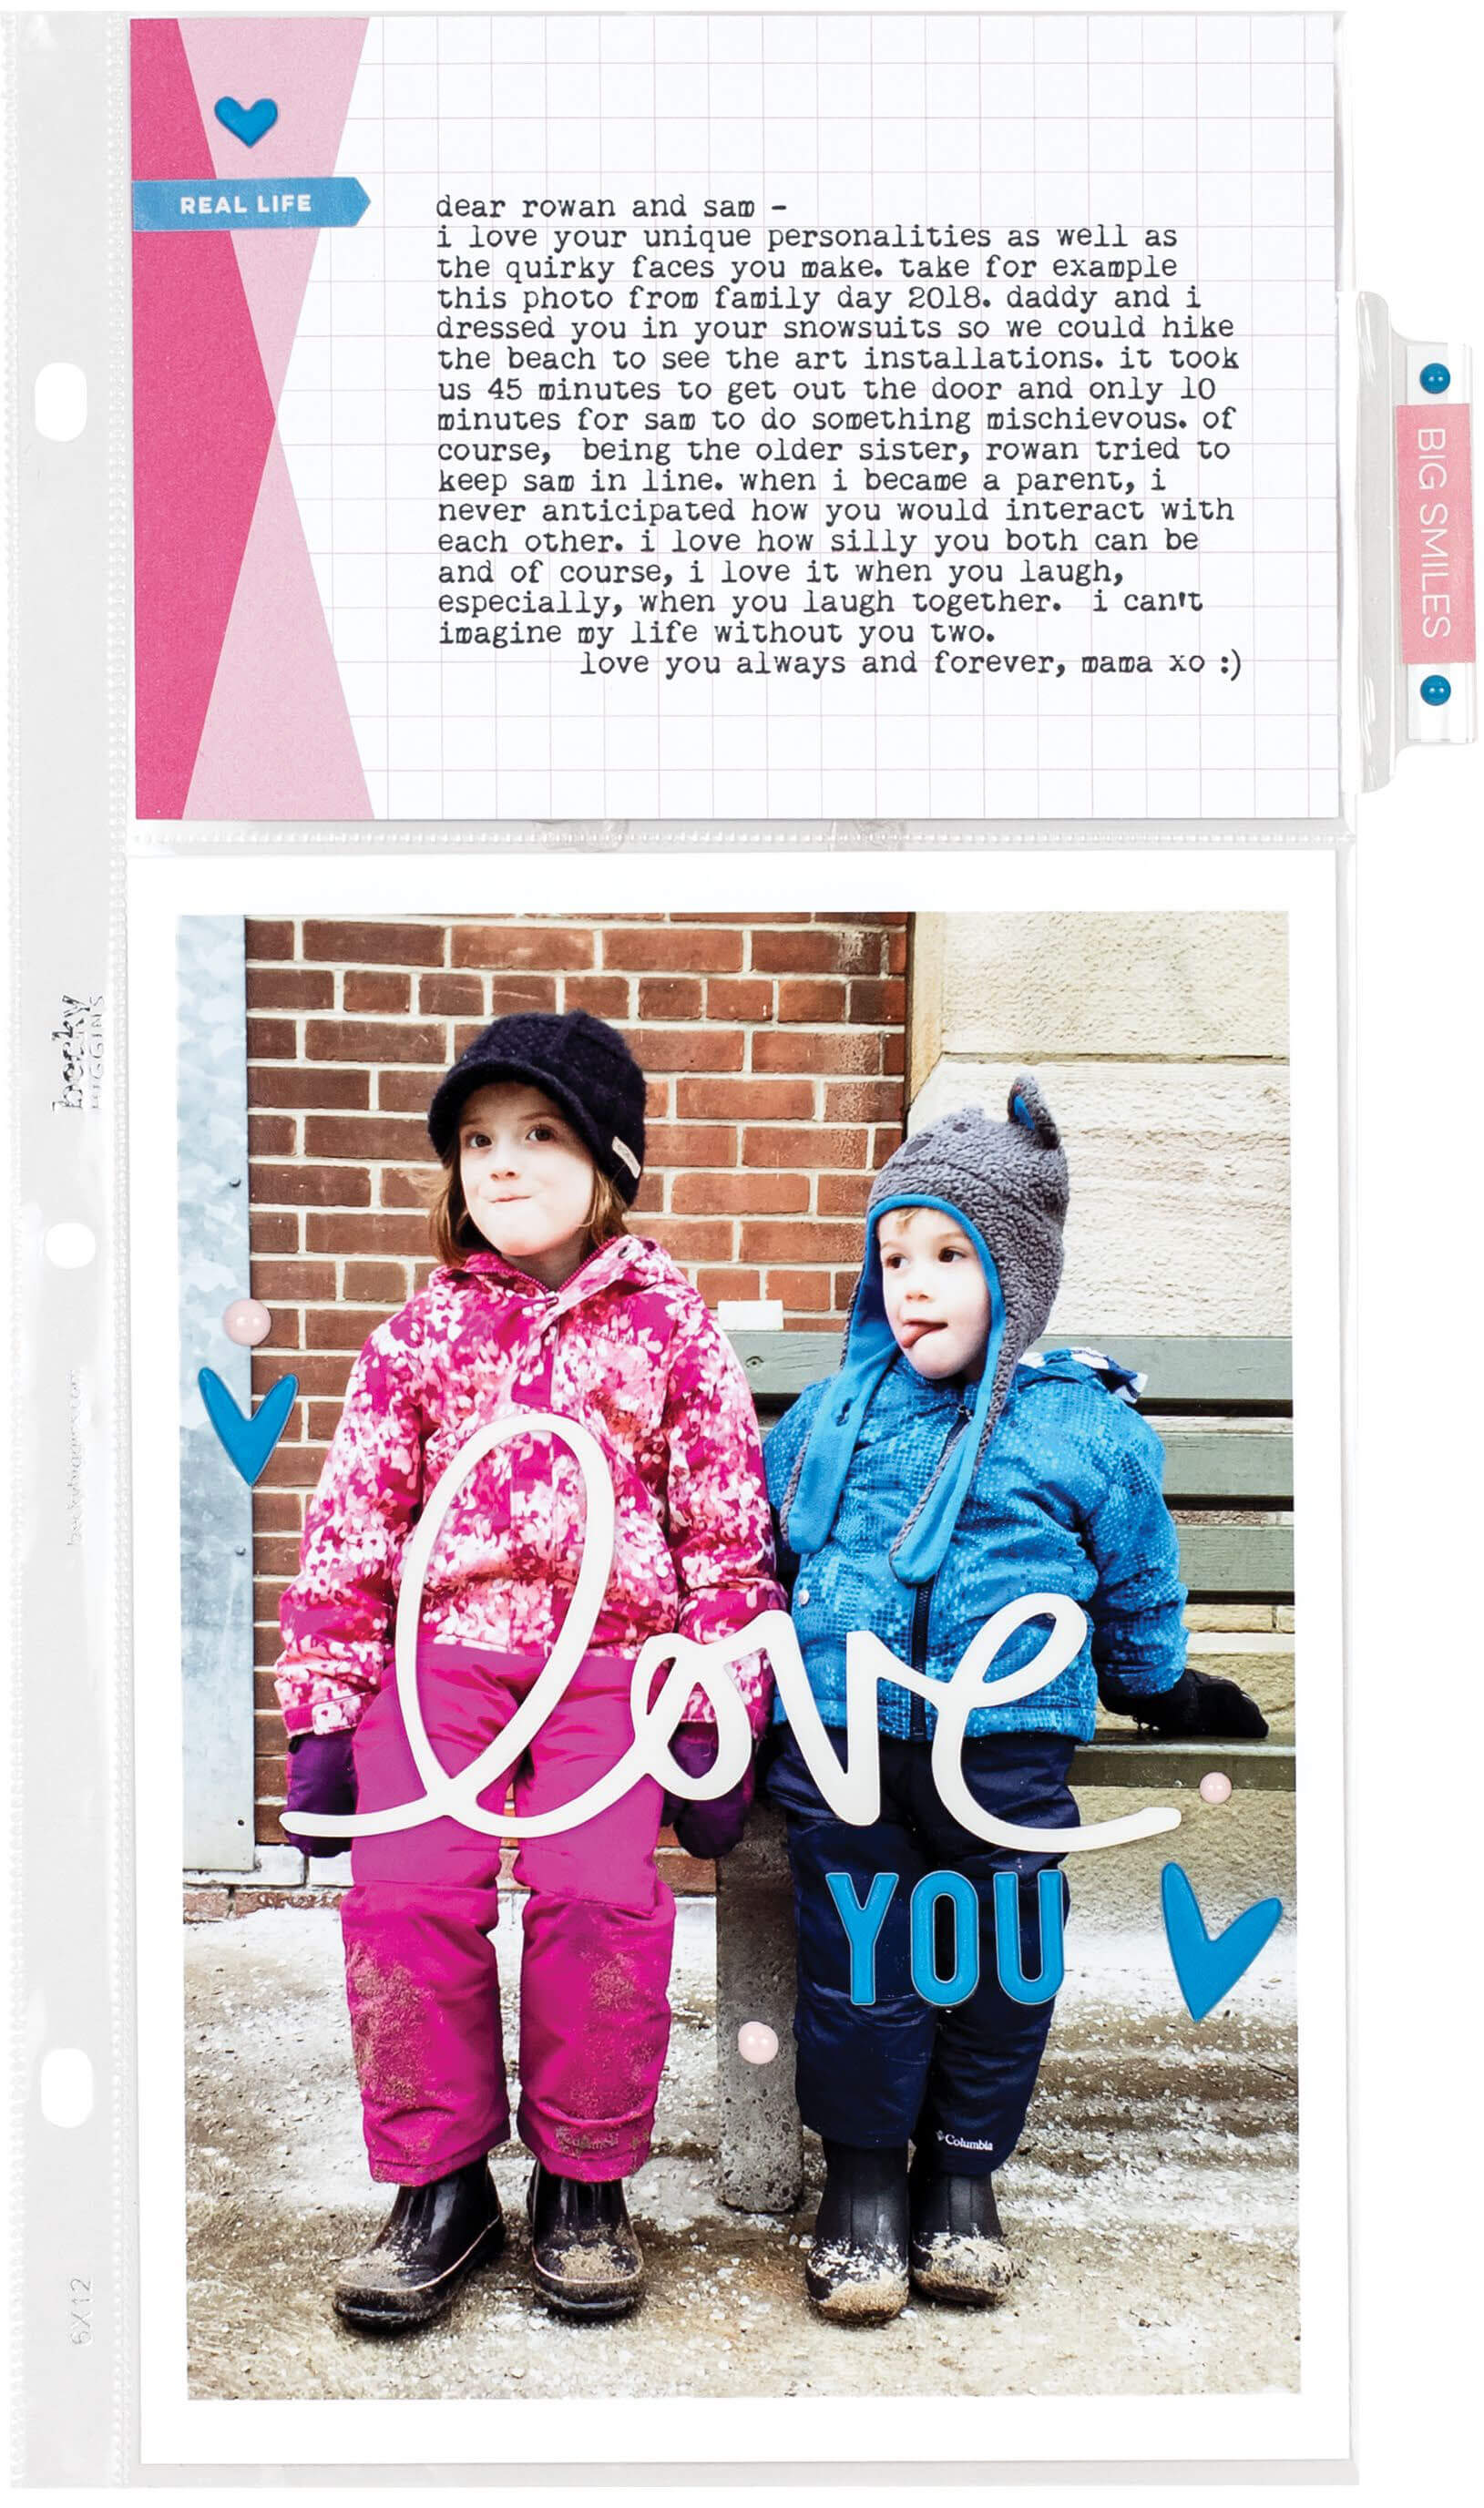 SCT Winter 2018 - Love You by Jess Forster